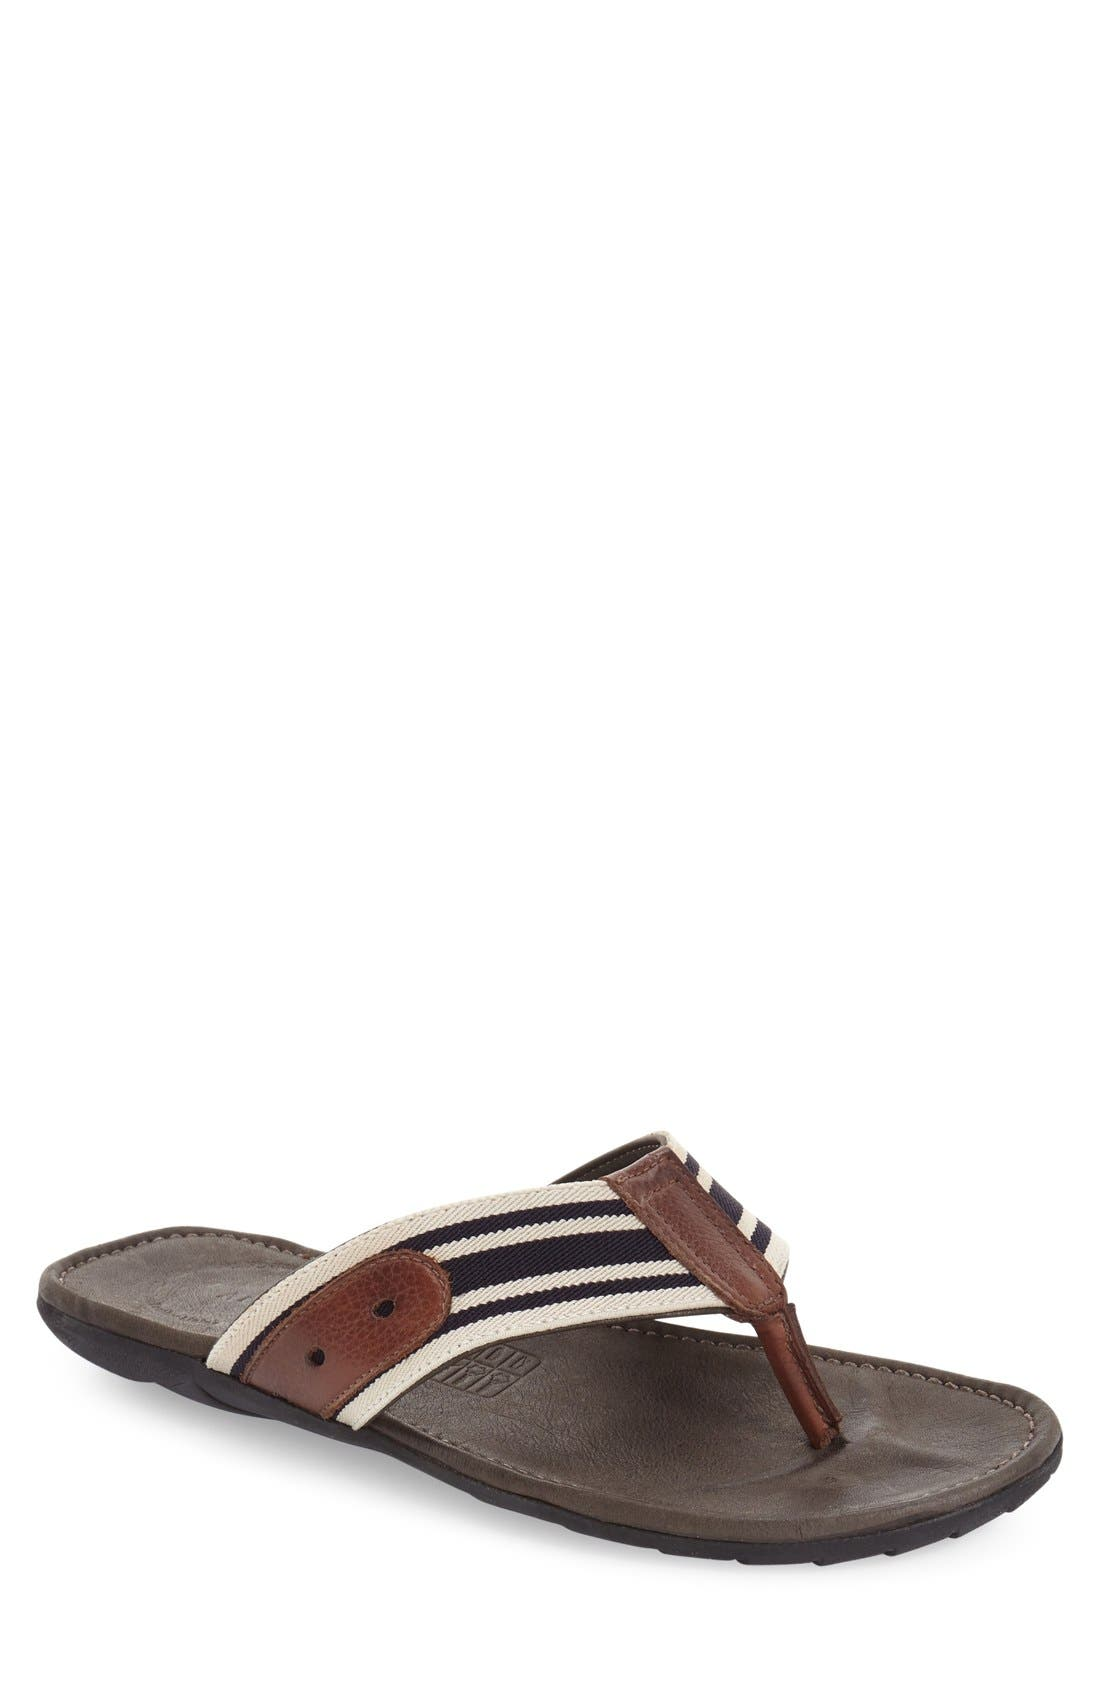 Paraiso Flip Flop,                         Main,                         color, 200